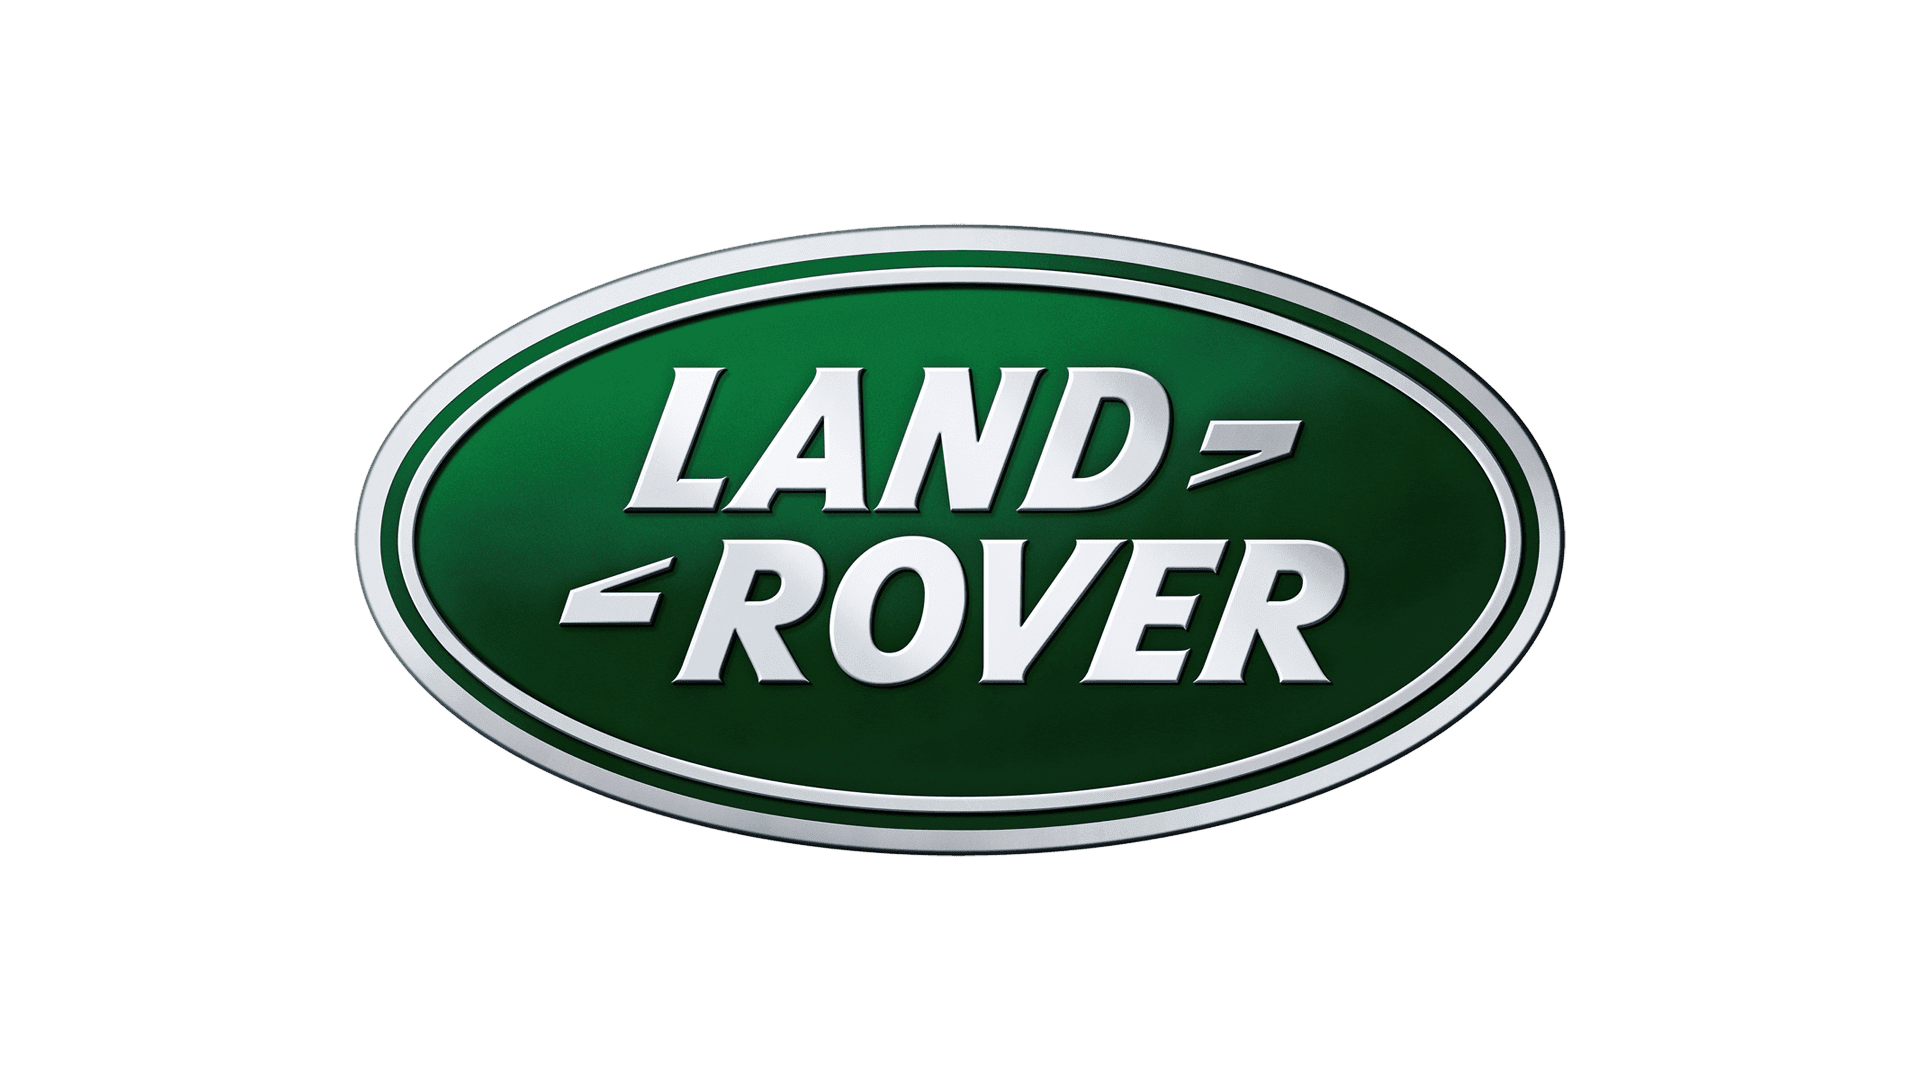 Land-Rover window sticker